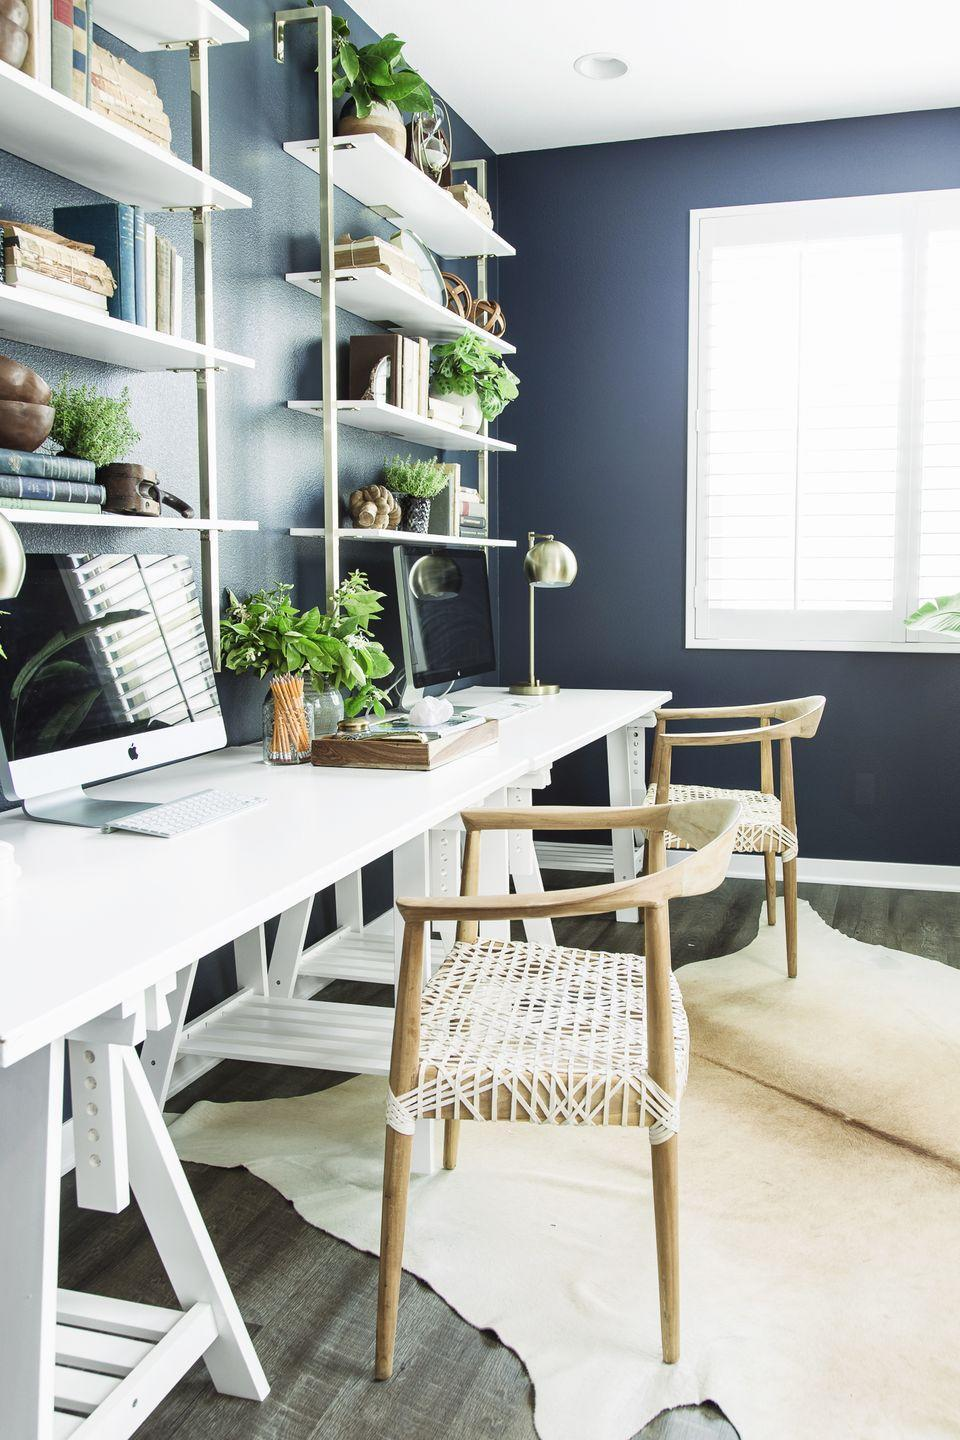 """<p>Rely on Mother Nature to give your office new life. Scatter succulents and plants — real or fake — on shelves and reap the benefits, especially if you choose <a href=""""https://www.goodhousekeeping.com/home/gardening/a32552/houseplants-that-purify-air/"""" rel=""""nofollow noopener"""" target=""""_blank"""" data-ylk=""""slk:air-purifying varieties like spider and snake plants."""" class=""""link rapid-noclick-resp"""">air-purifying varieties like spider and snake plants. </a></p>"""